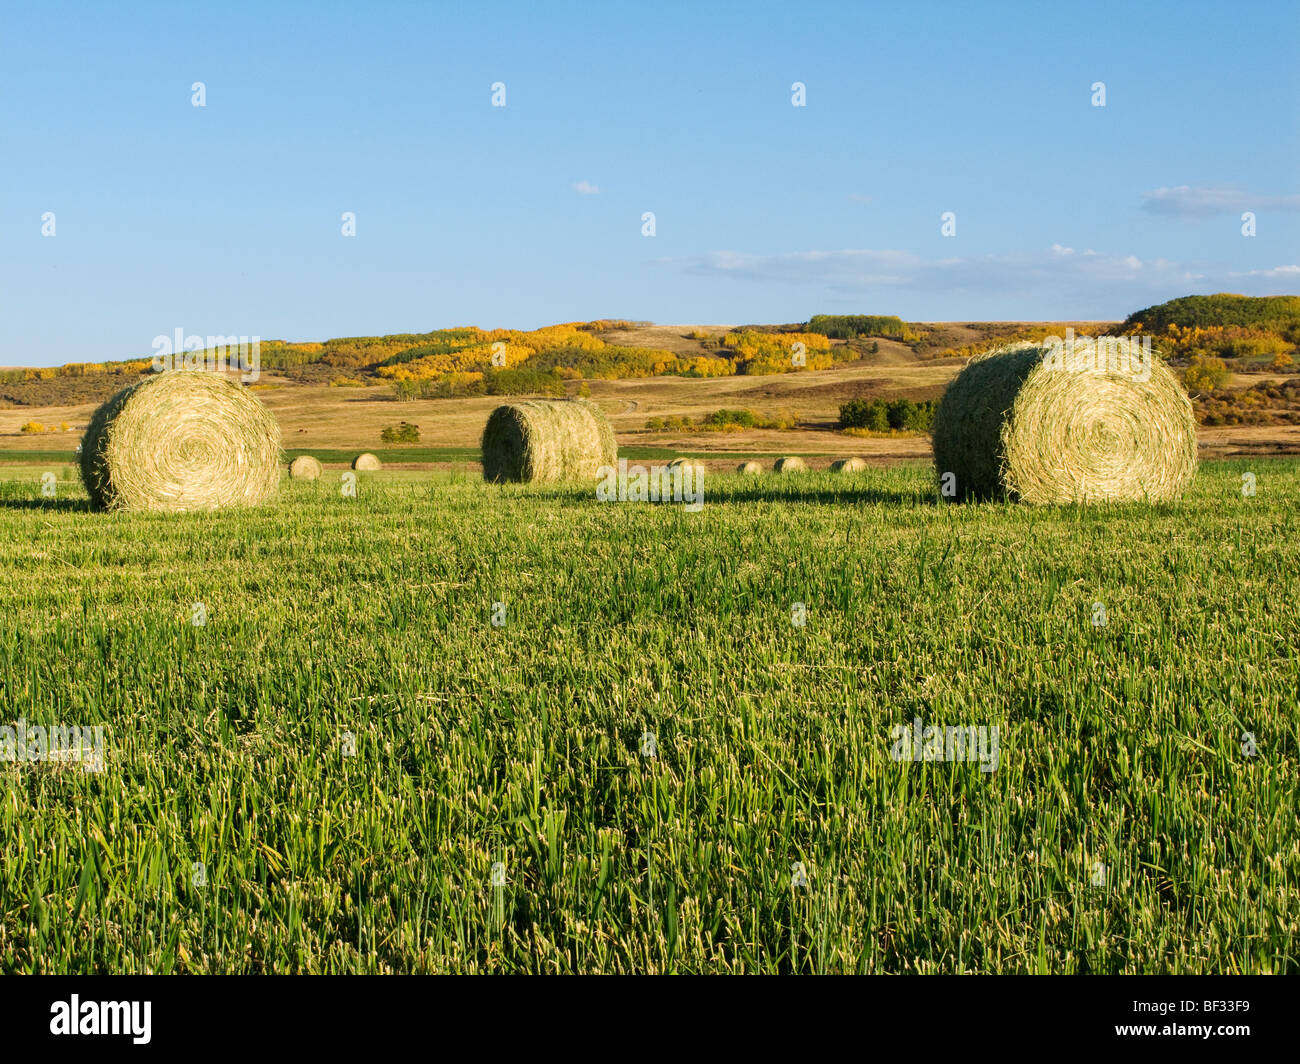 Agriculture - Round hay bales on green grass stubble / Alberta, Canada. - Stock Image